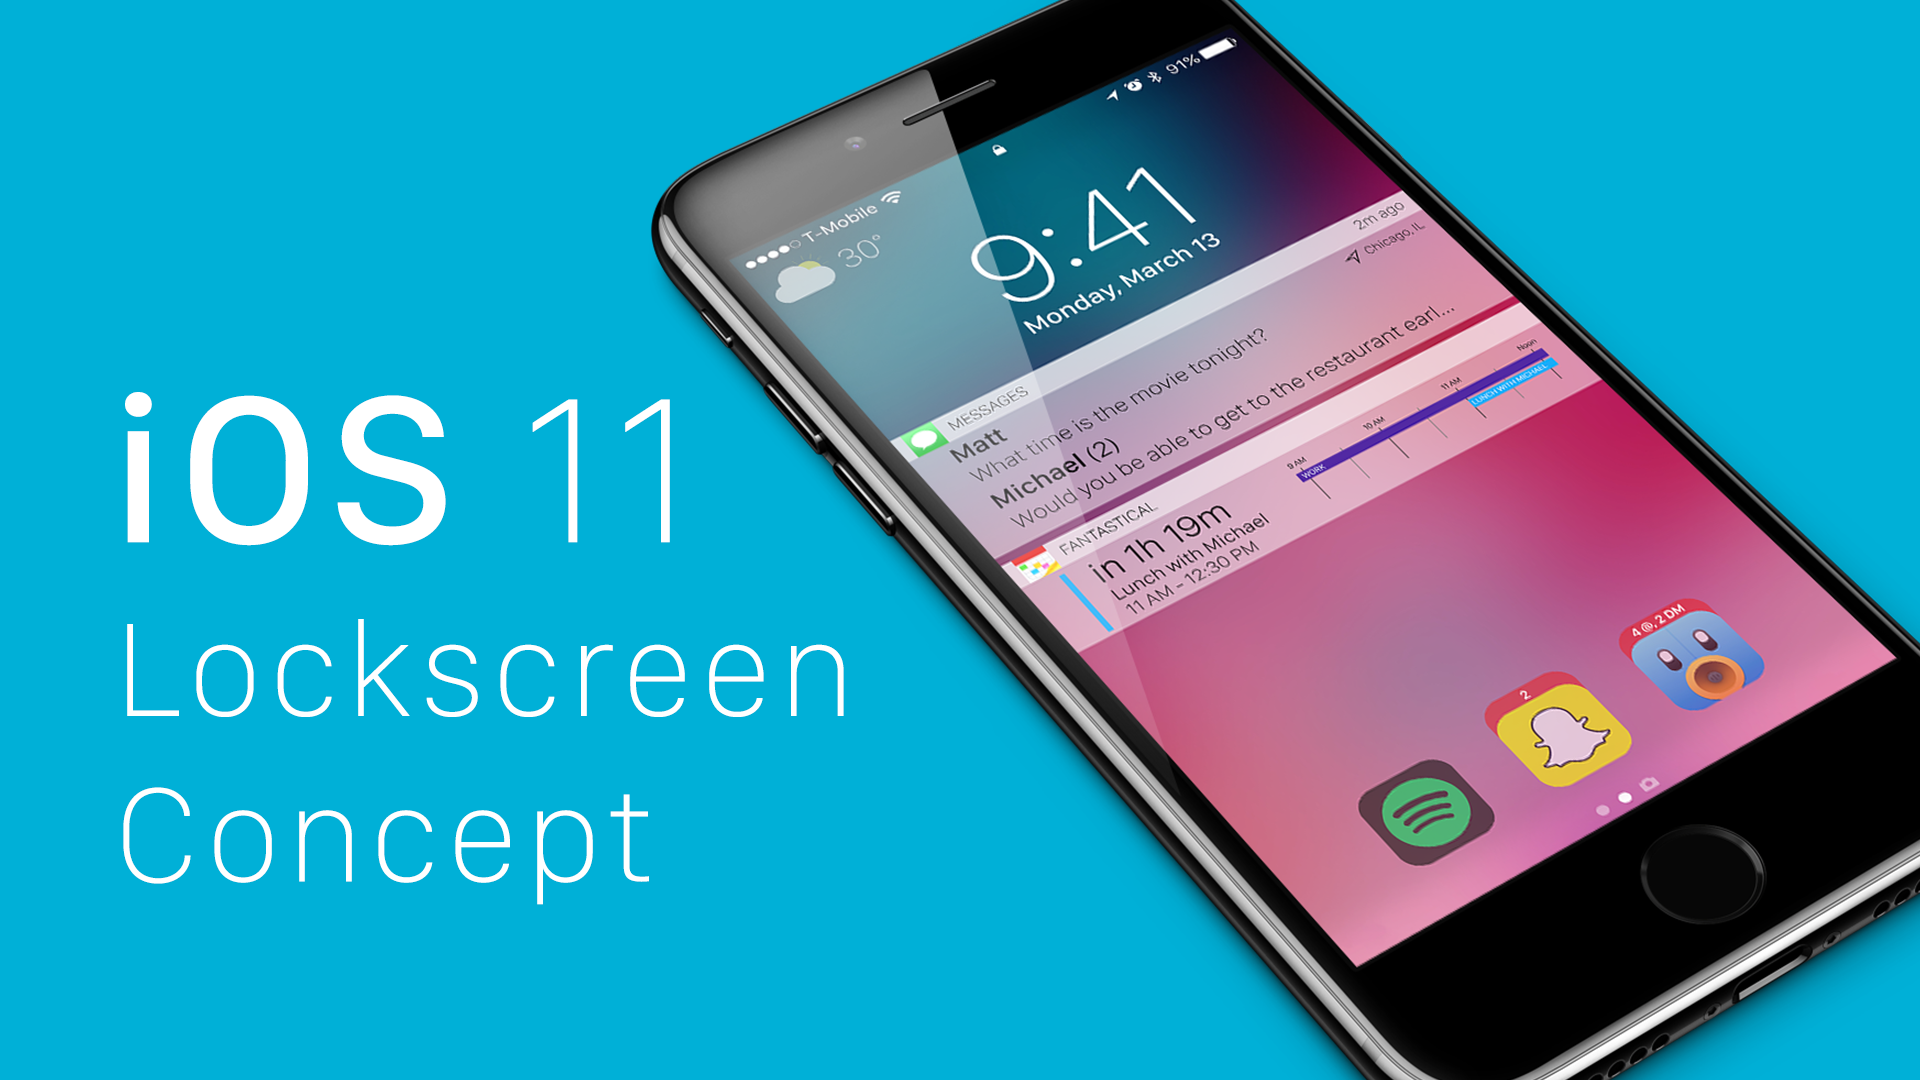 This Cool IOS 11 Concept Would Bring More Power To Your